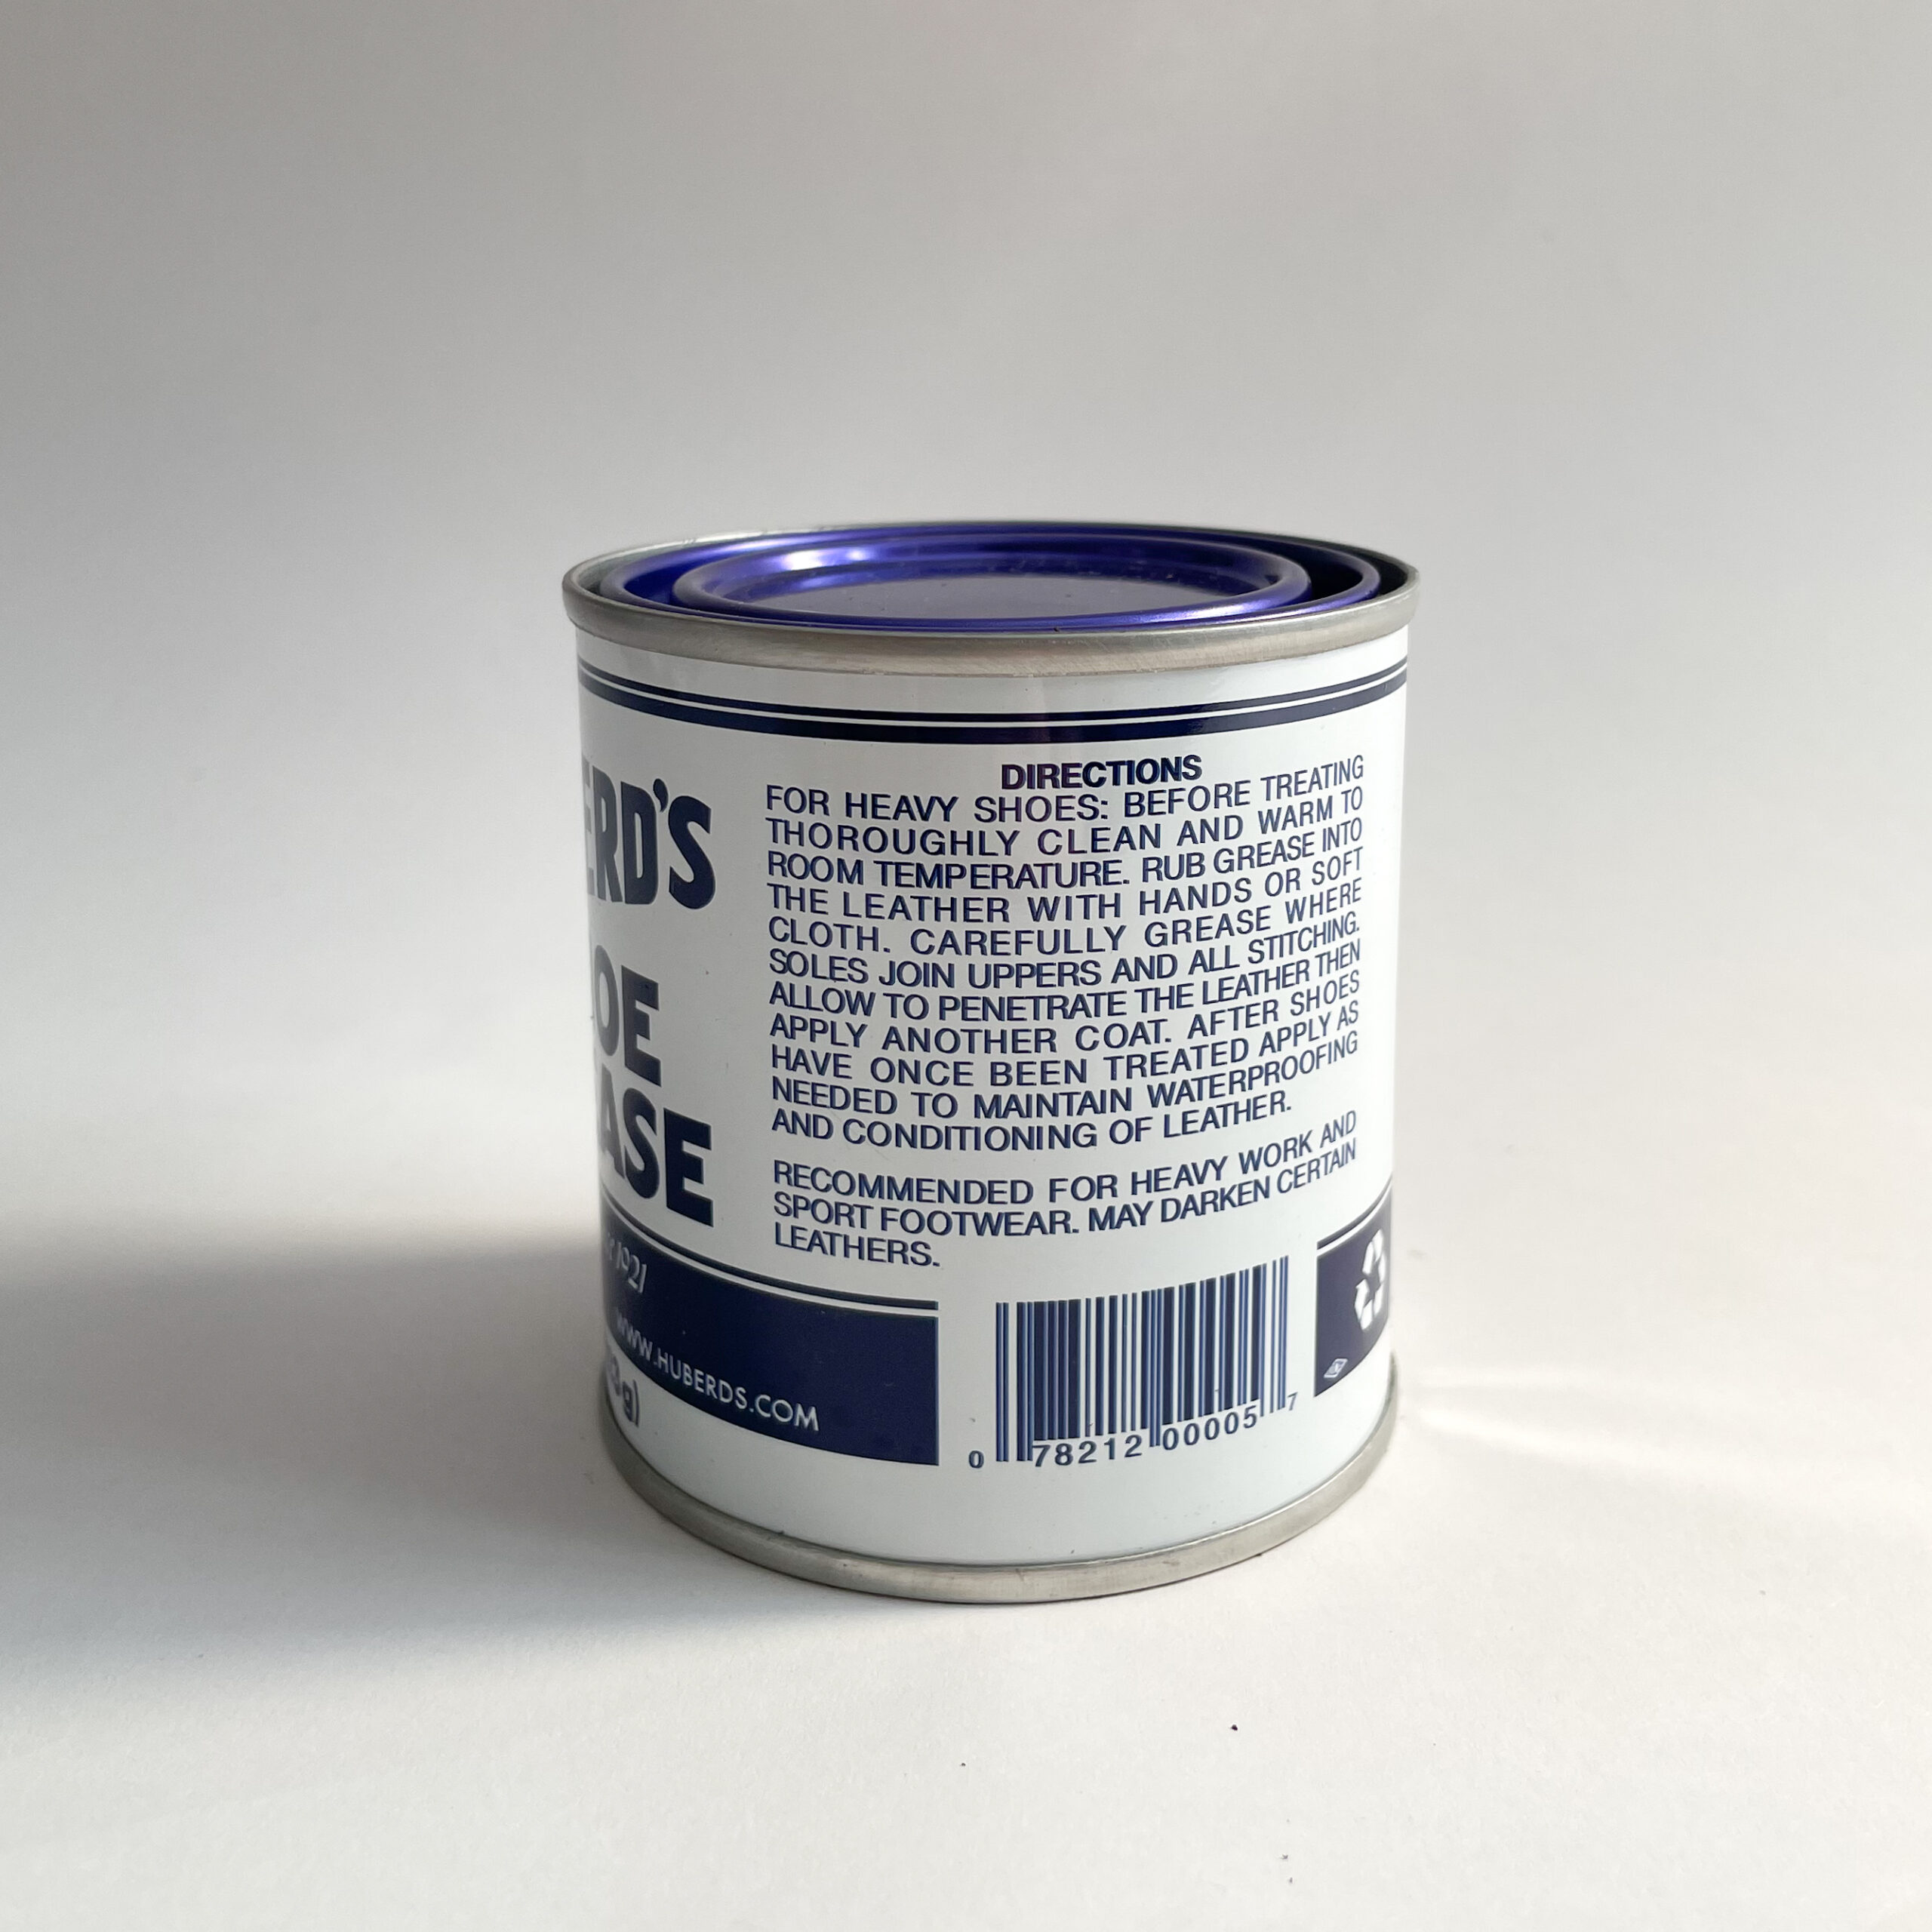 The side of a Huberd's Shoe Grease Can, showing the Directions